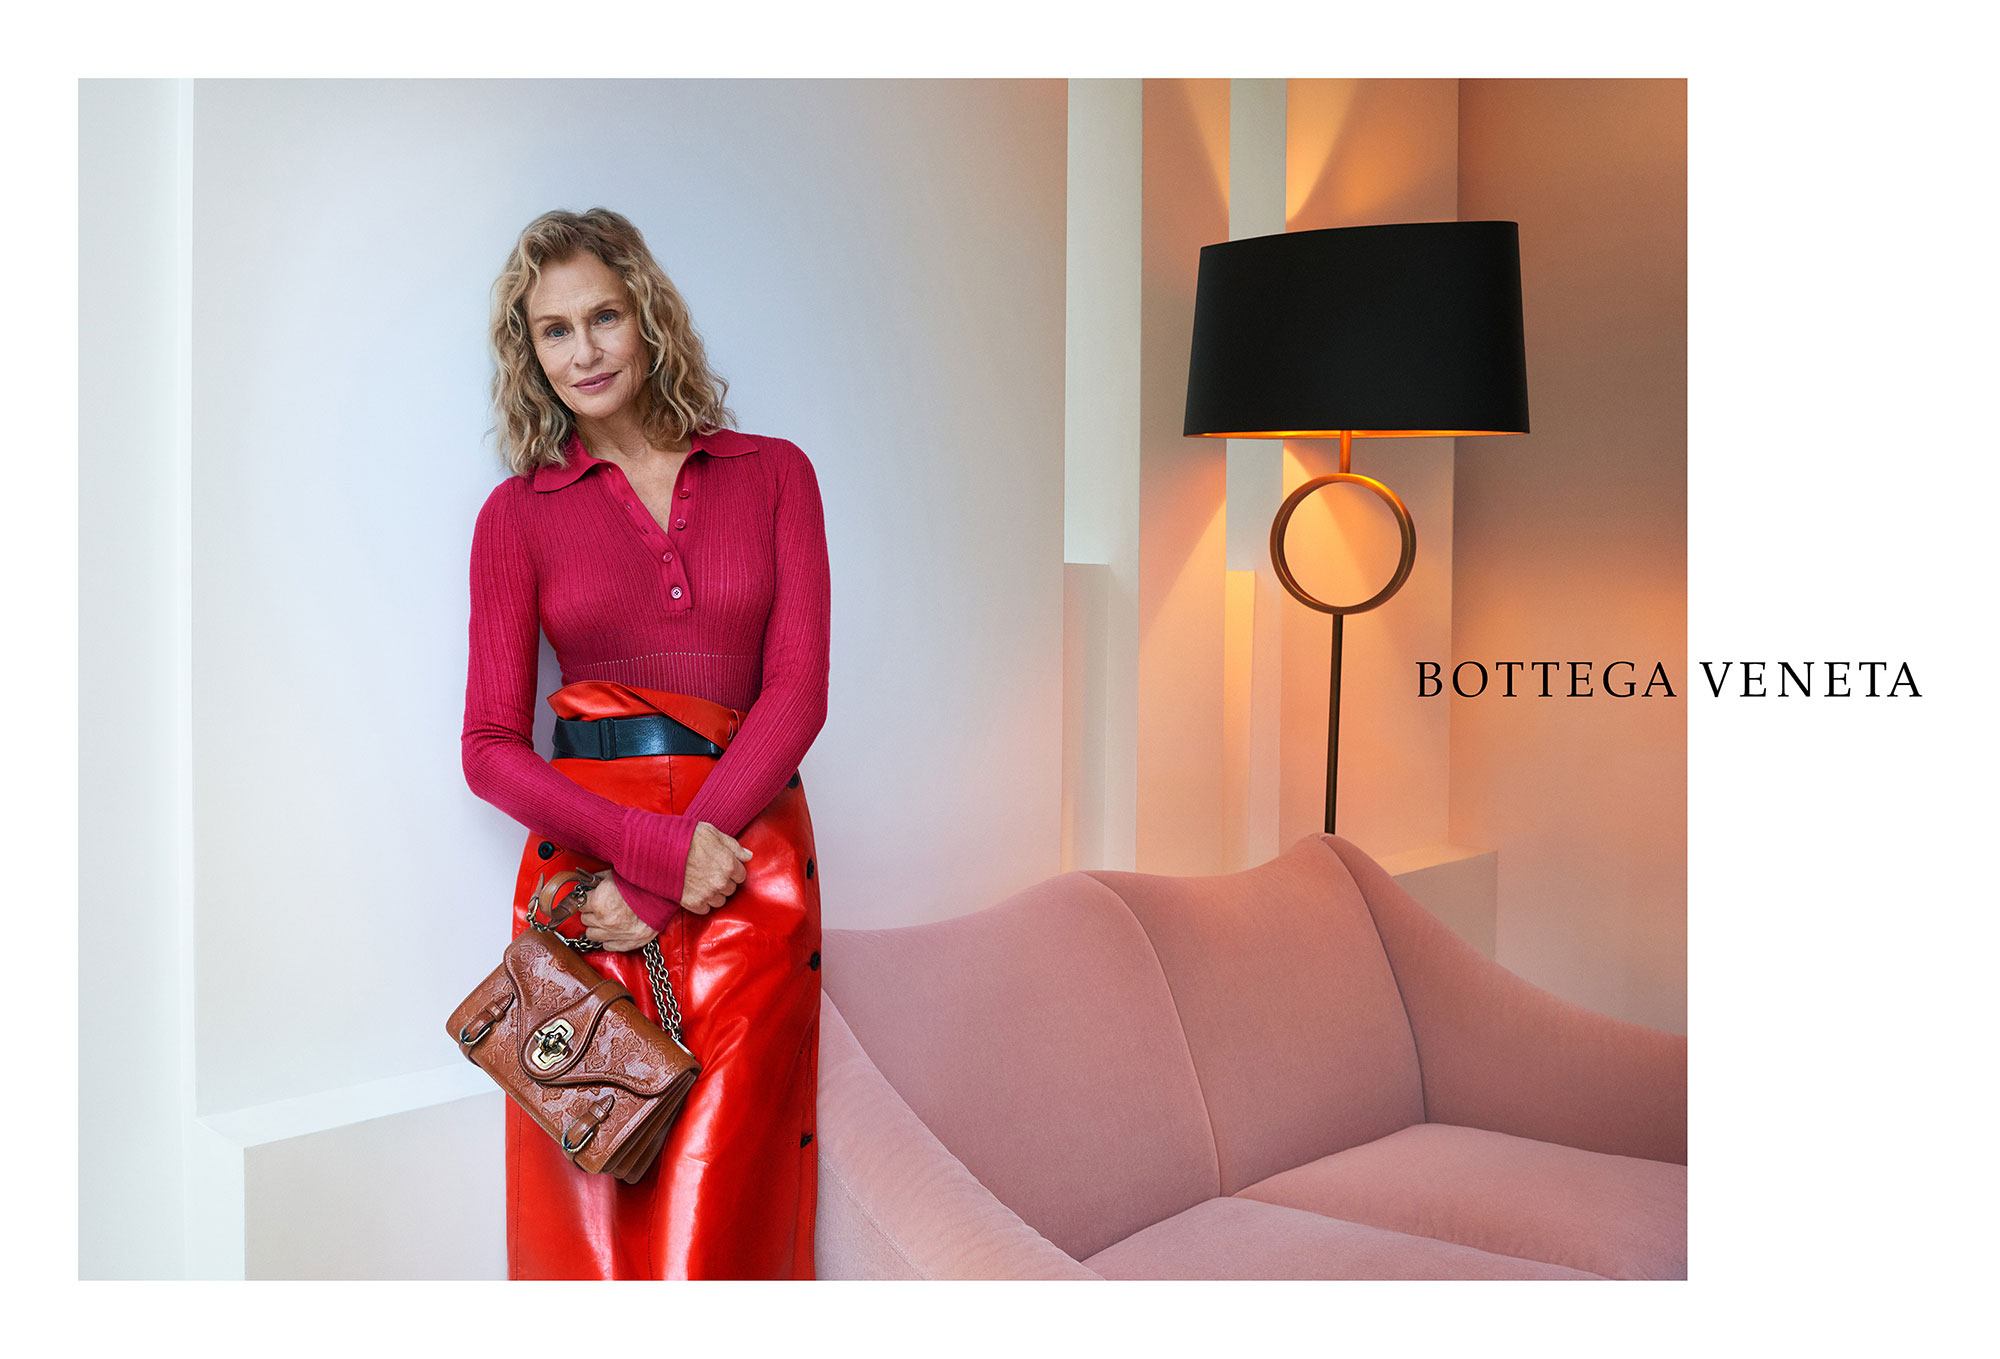 Bottega Veneta SS17 (Lauren Hutton Image) | Agency - Lloyd&Co., Photographer - Todd Hido